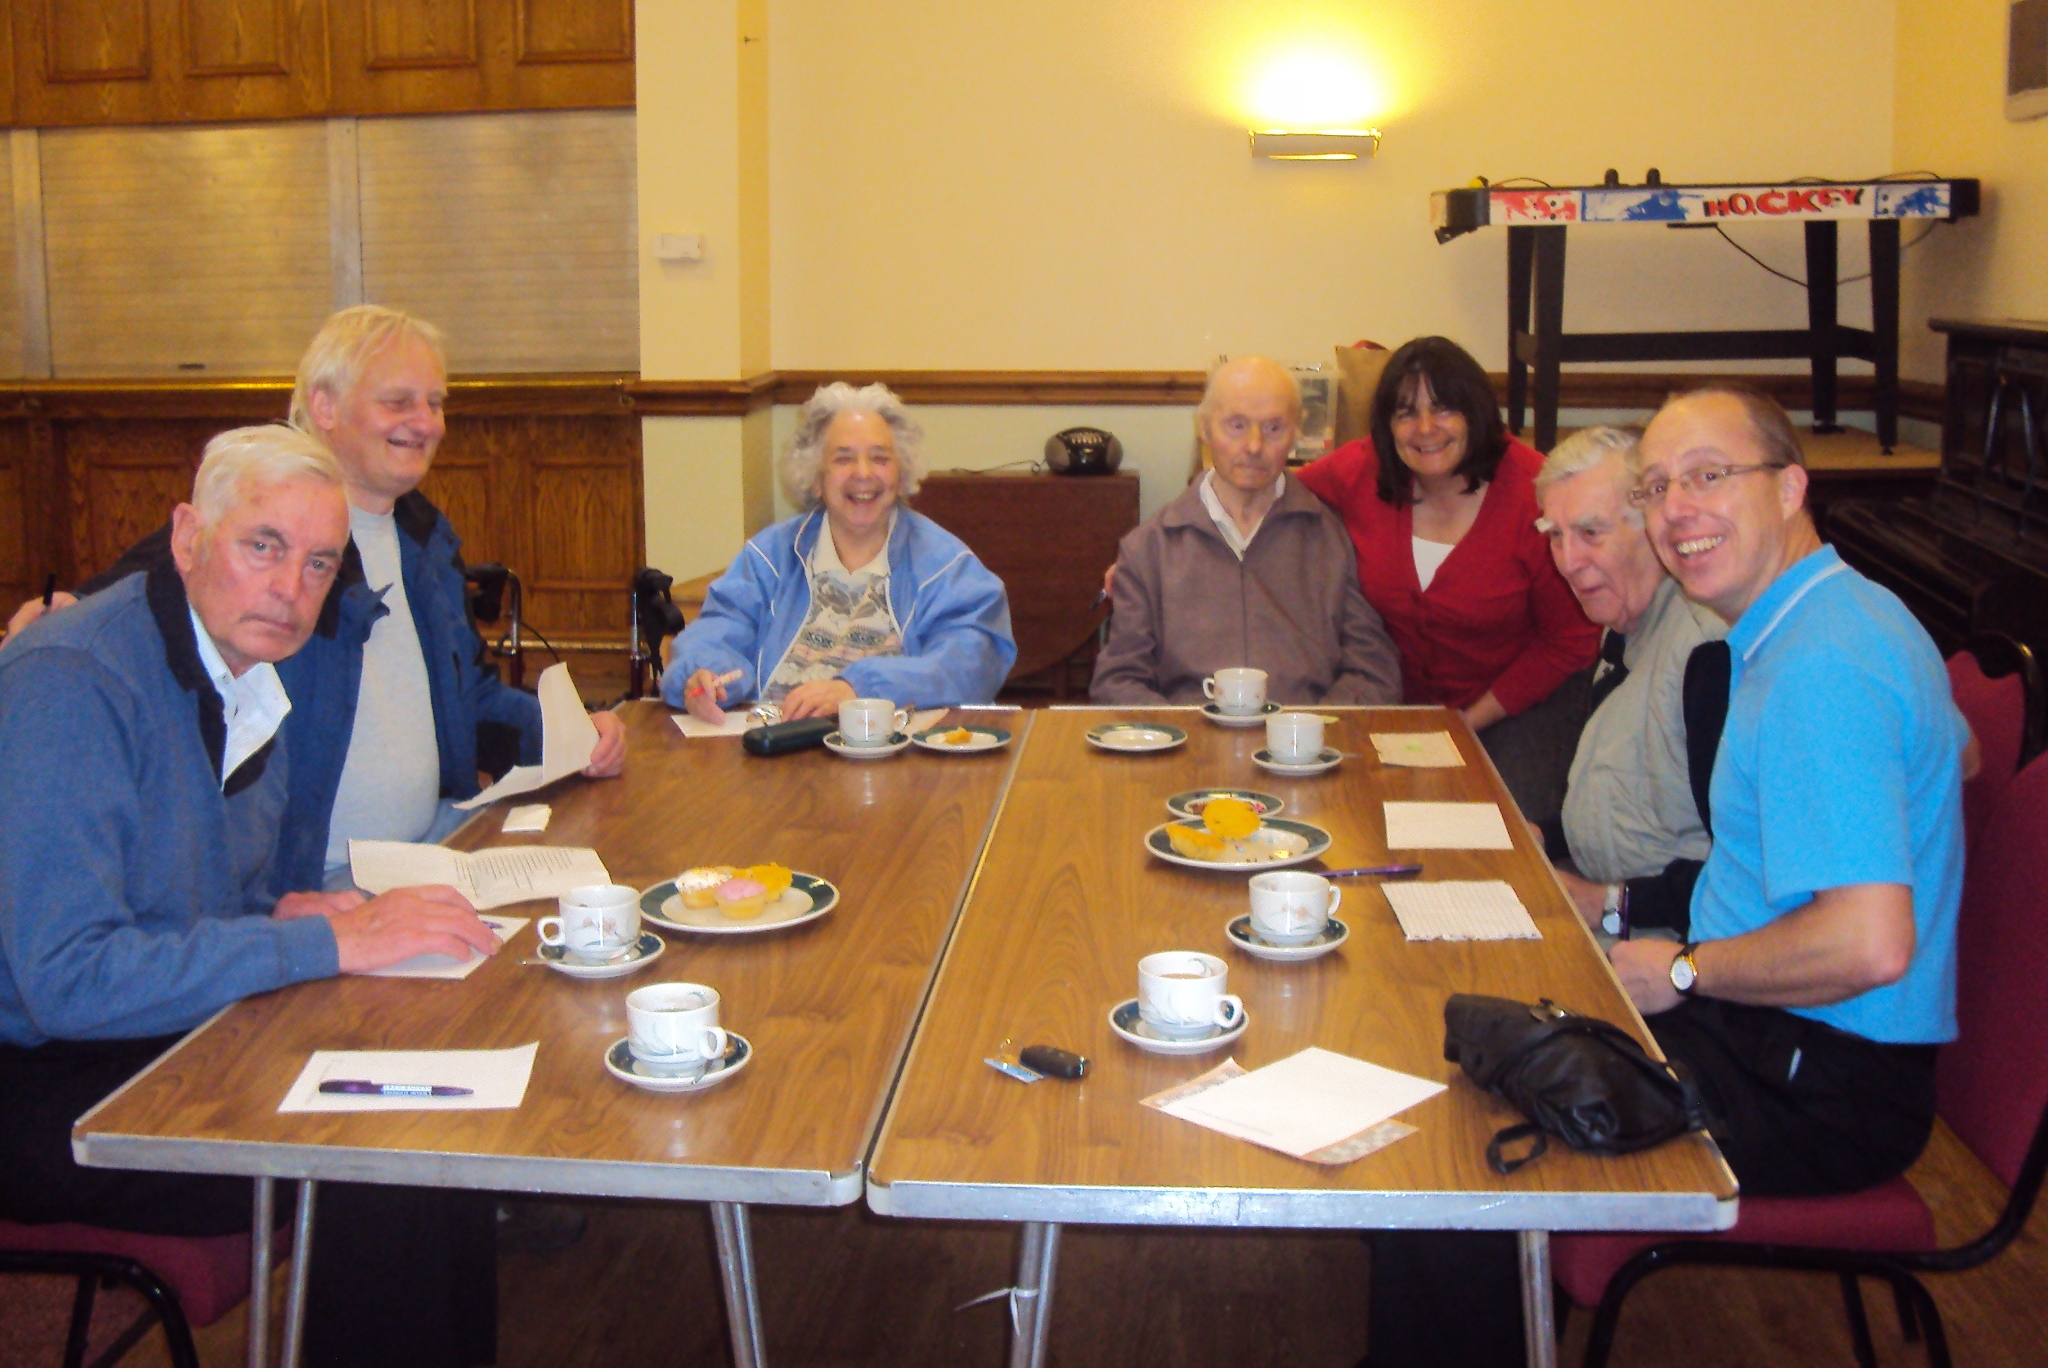 Home Instead Halton owner Neil Cook and attendees at the Tea, Laughter and Company event in Kingsley